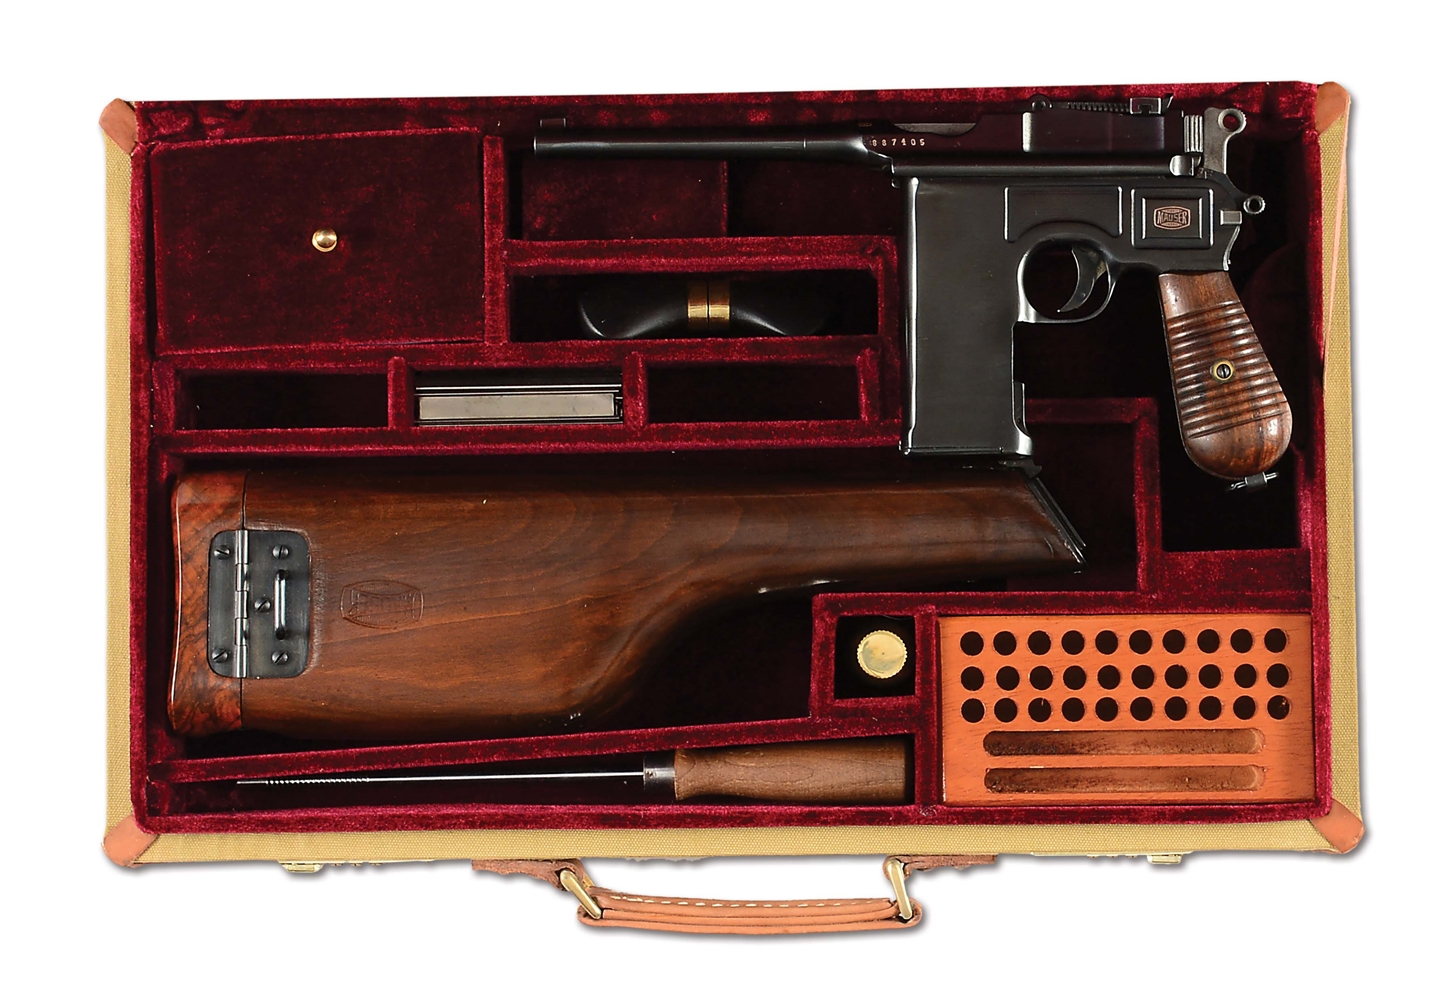 (N) FANTASTIC FULL AUTO BROOMHANDLE MAUSER MACHINE GUN PISTOL WITH 20 SHOT FIXED MAGAZINE (CURIO AND RELIC).